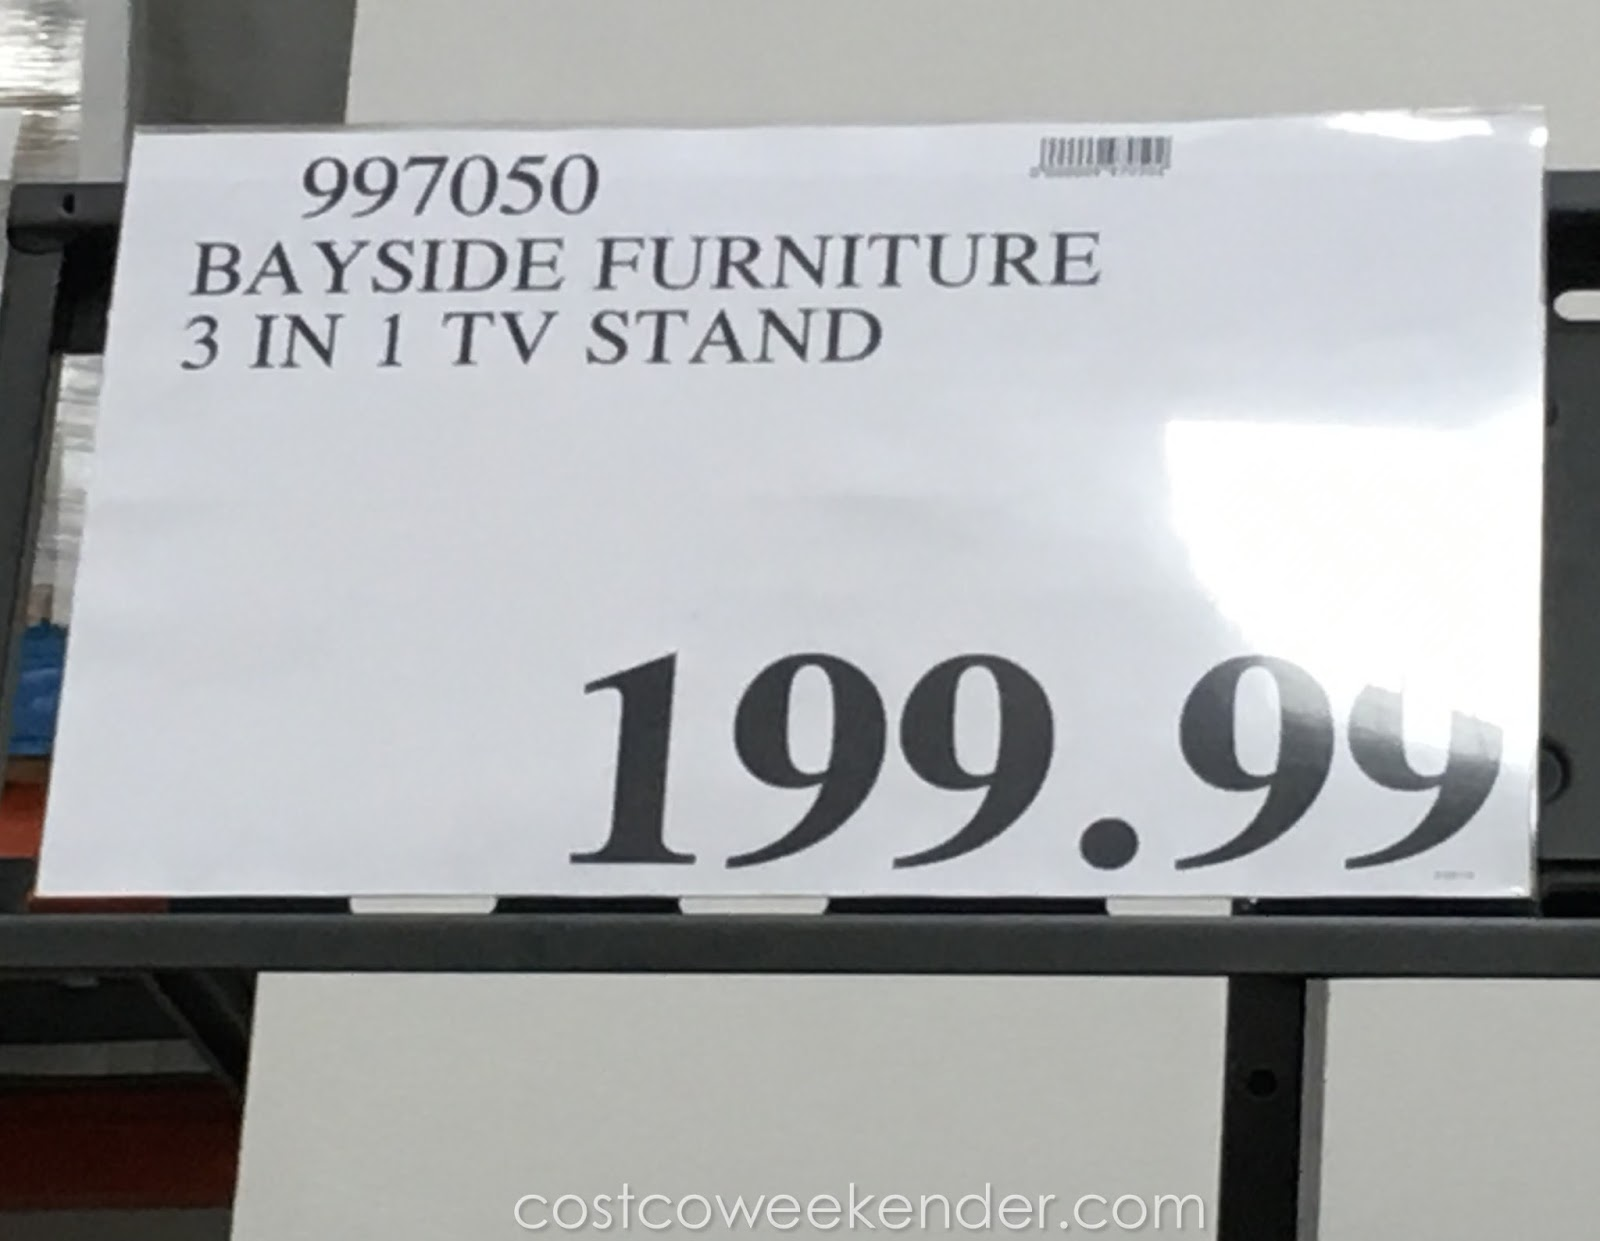 Costco In Store Black Friday Specials >> Bayside Furnishings 3-in-1 TV Stand | Costco Weekender